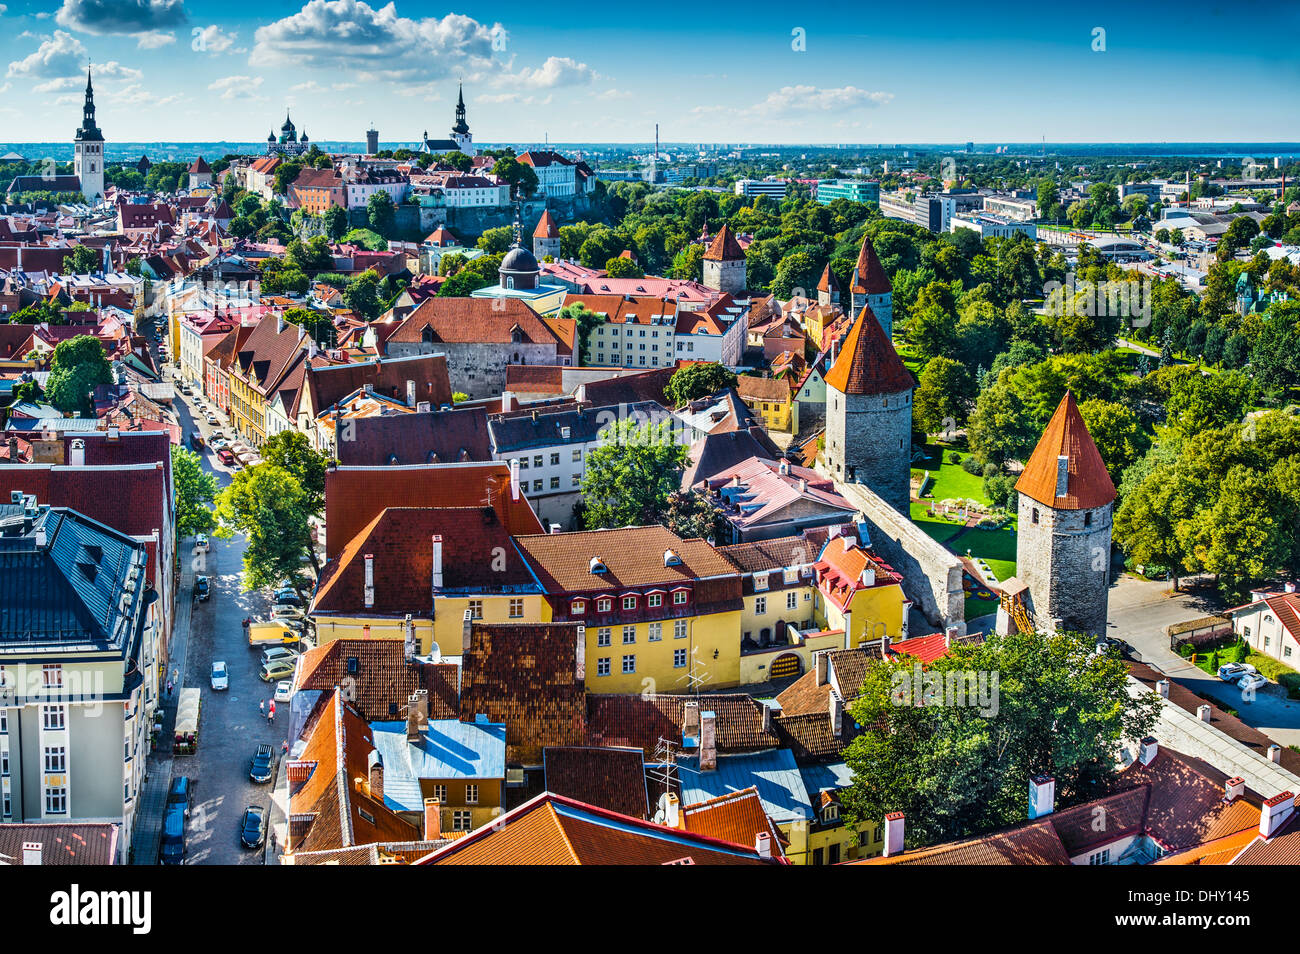 Dawn in Tallinn, Estonia at the old city. - Stock Image